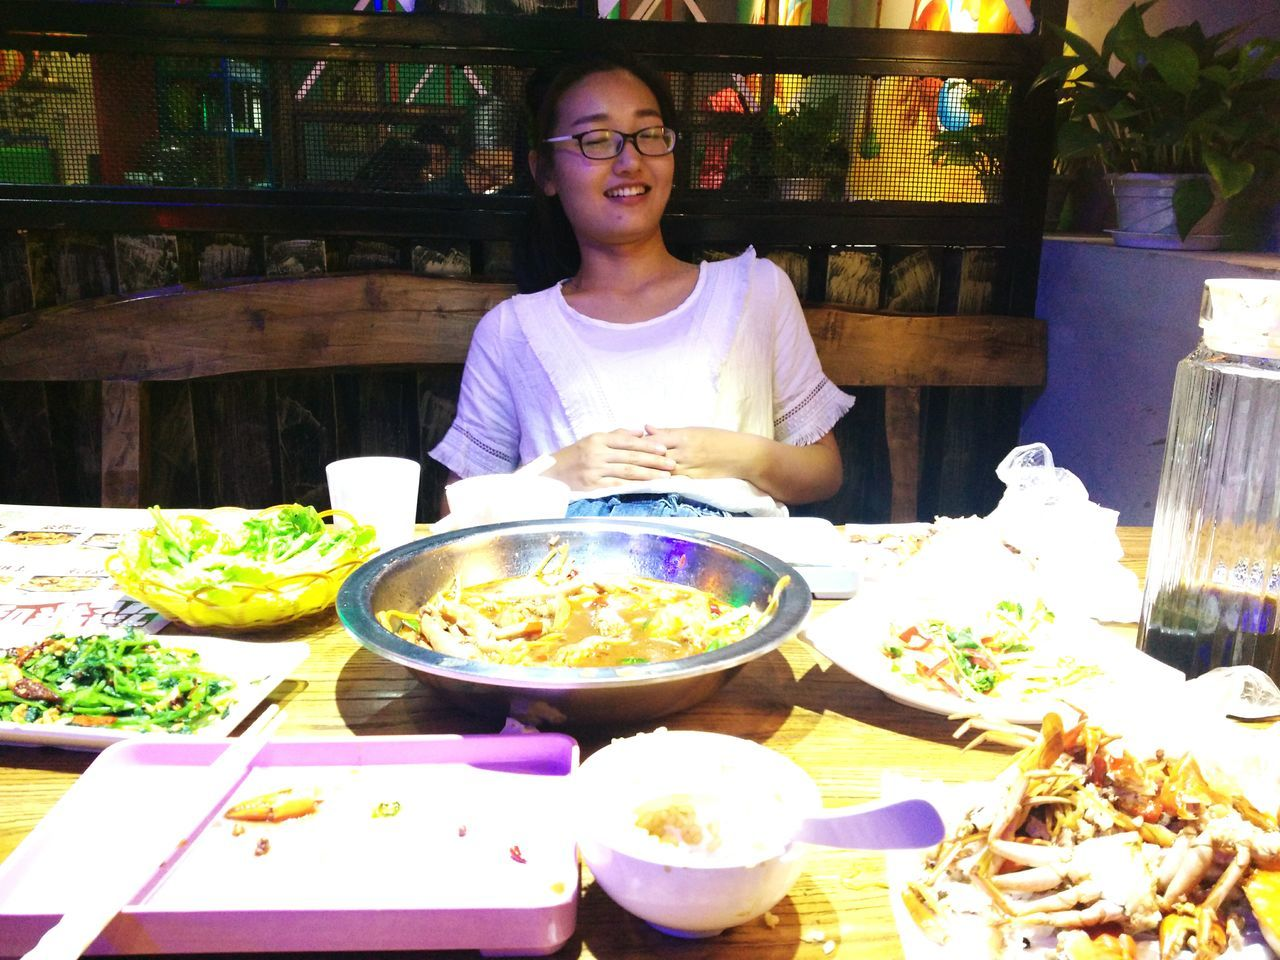 food and drink, front view, one person, real people, food, table, freshness, indoors, looking at camera, portrait, day, sitting, young adult, people